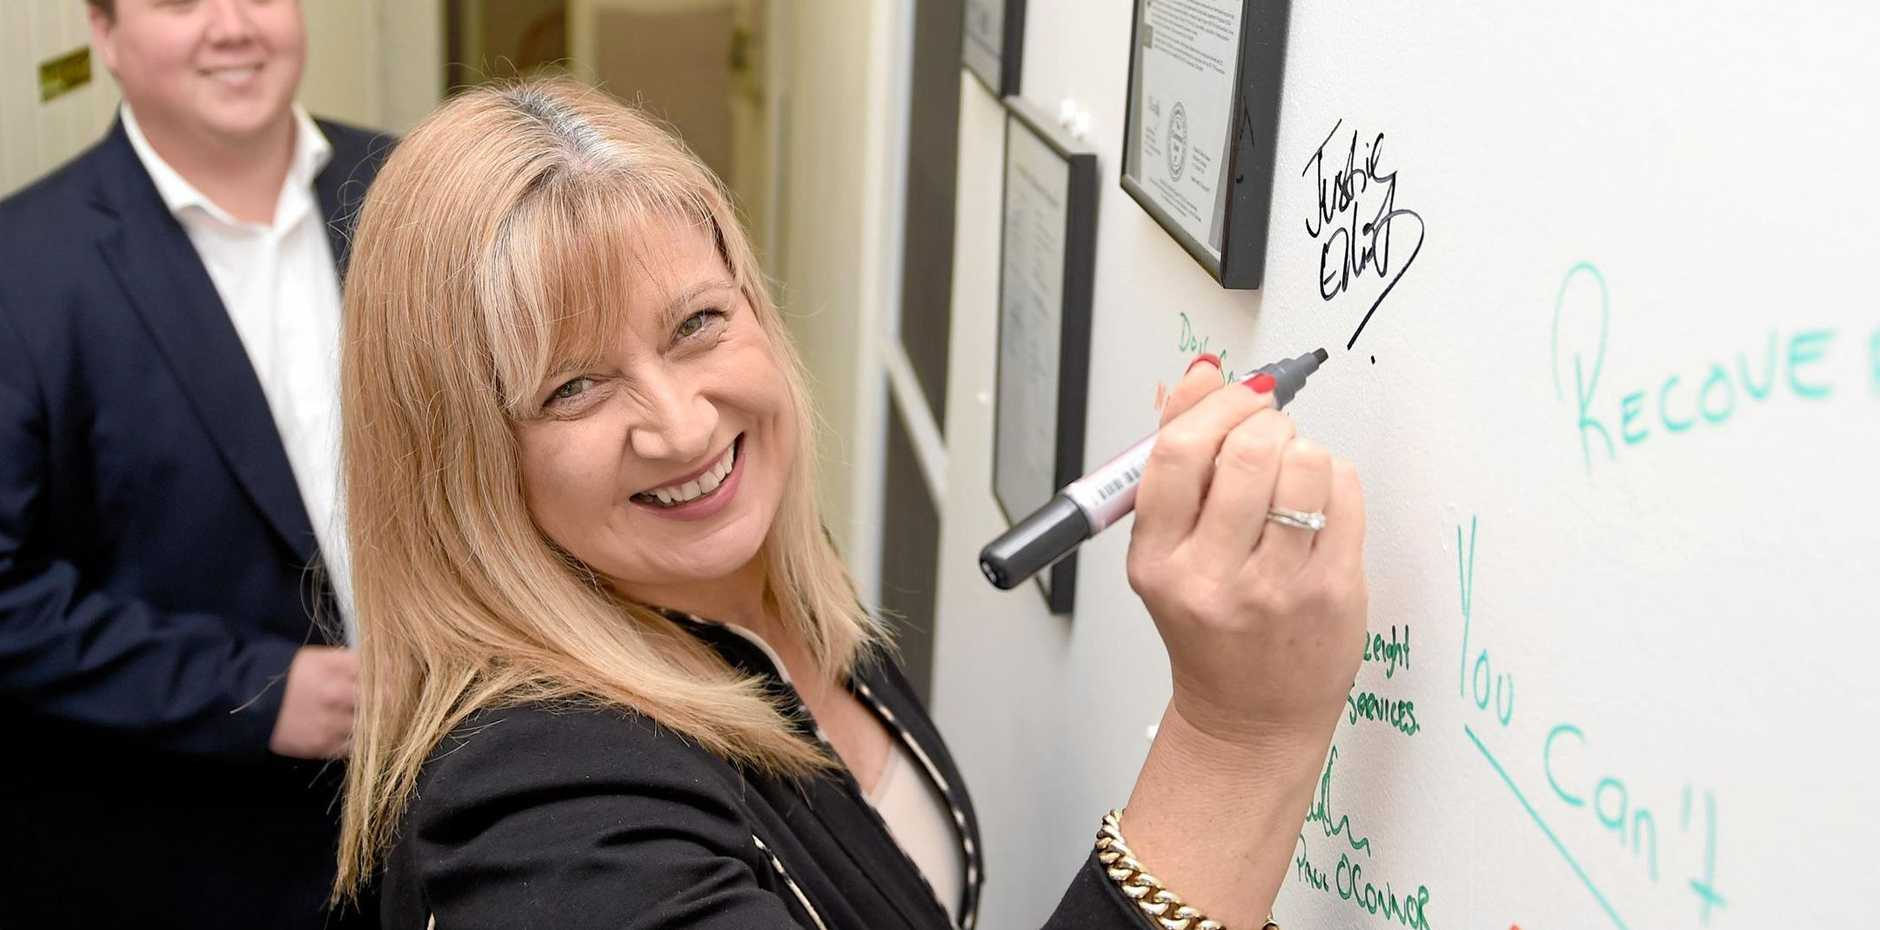 Justine Elliot on track to win seat of Richmond according to readers of the Tweed Daily News.